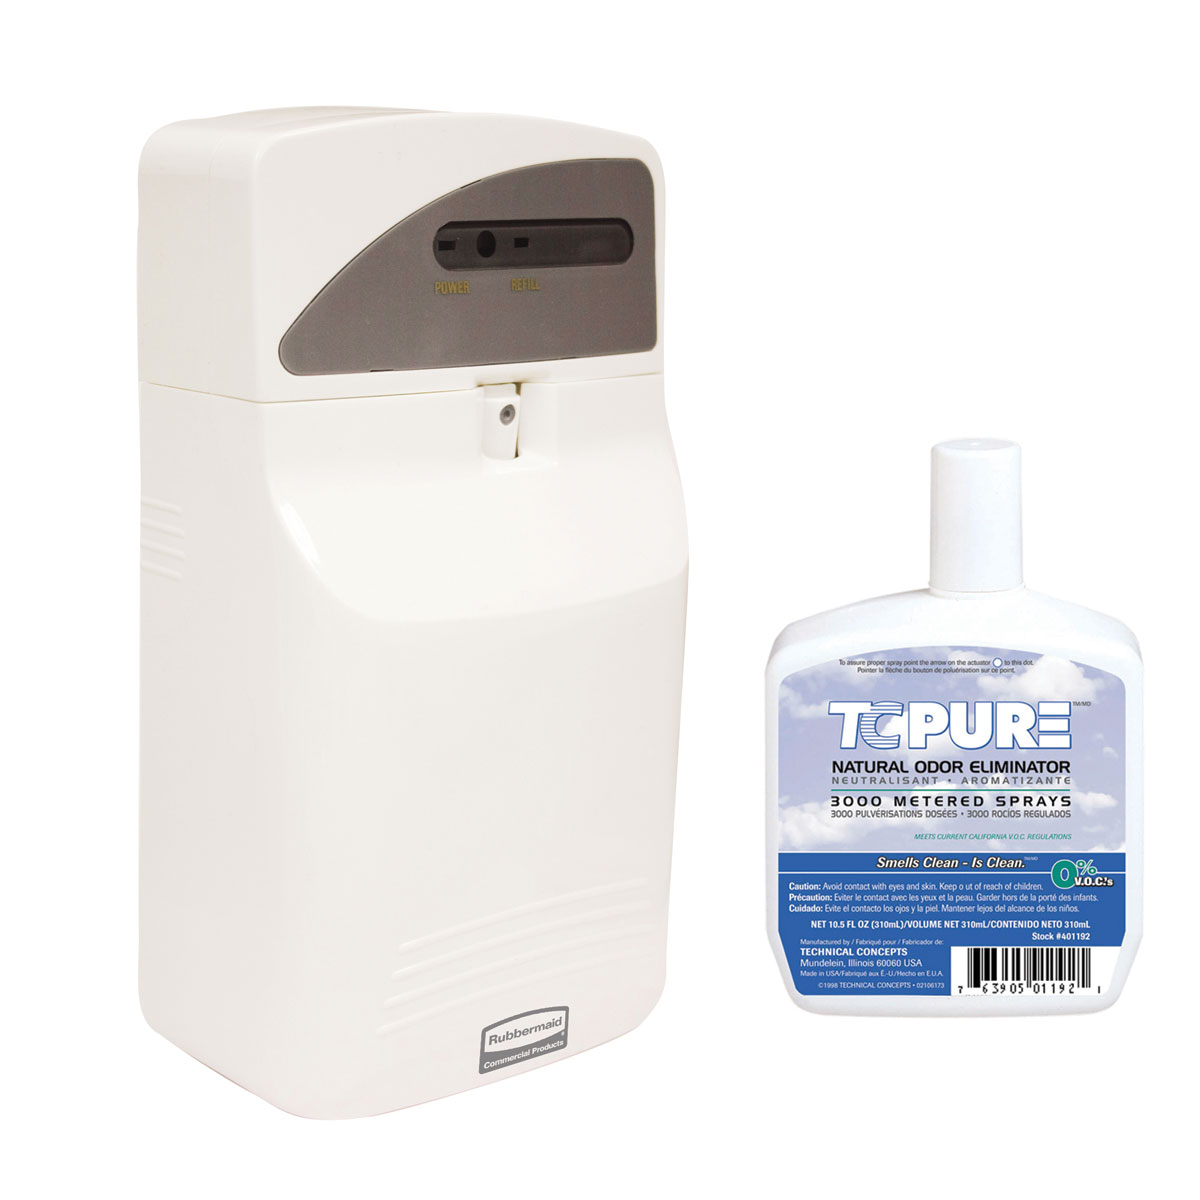 TC Rubbermaid AutoFresh Odor Control LED Pump Dispenser Kit